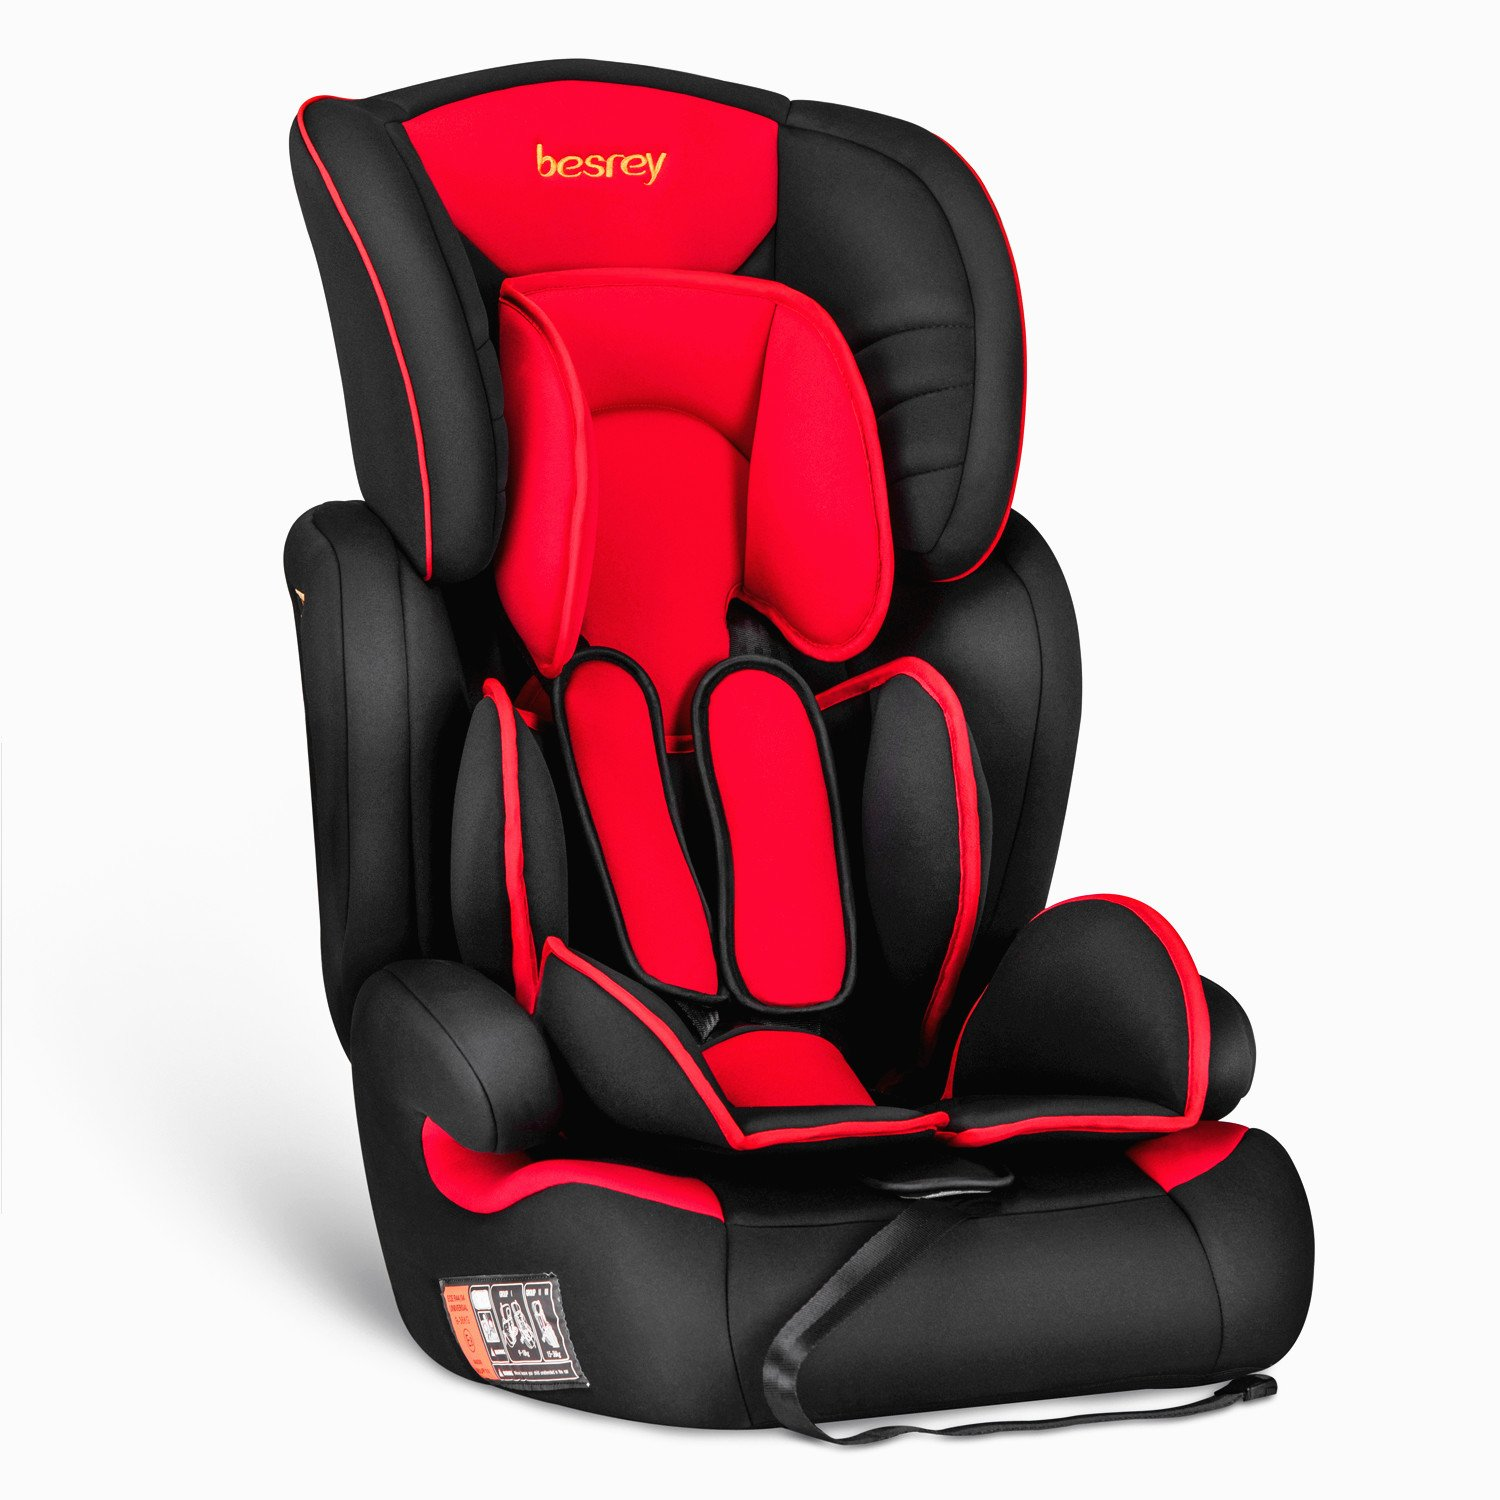 Besrey Car Seat Baby Car Booster Seat Group 1 2 3 Suits from 9 Months-12 Years - Black and Red ZK505A